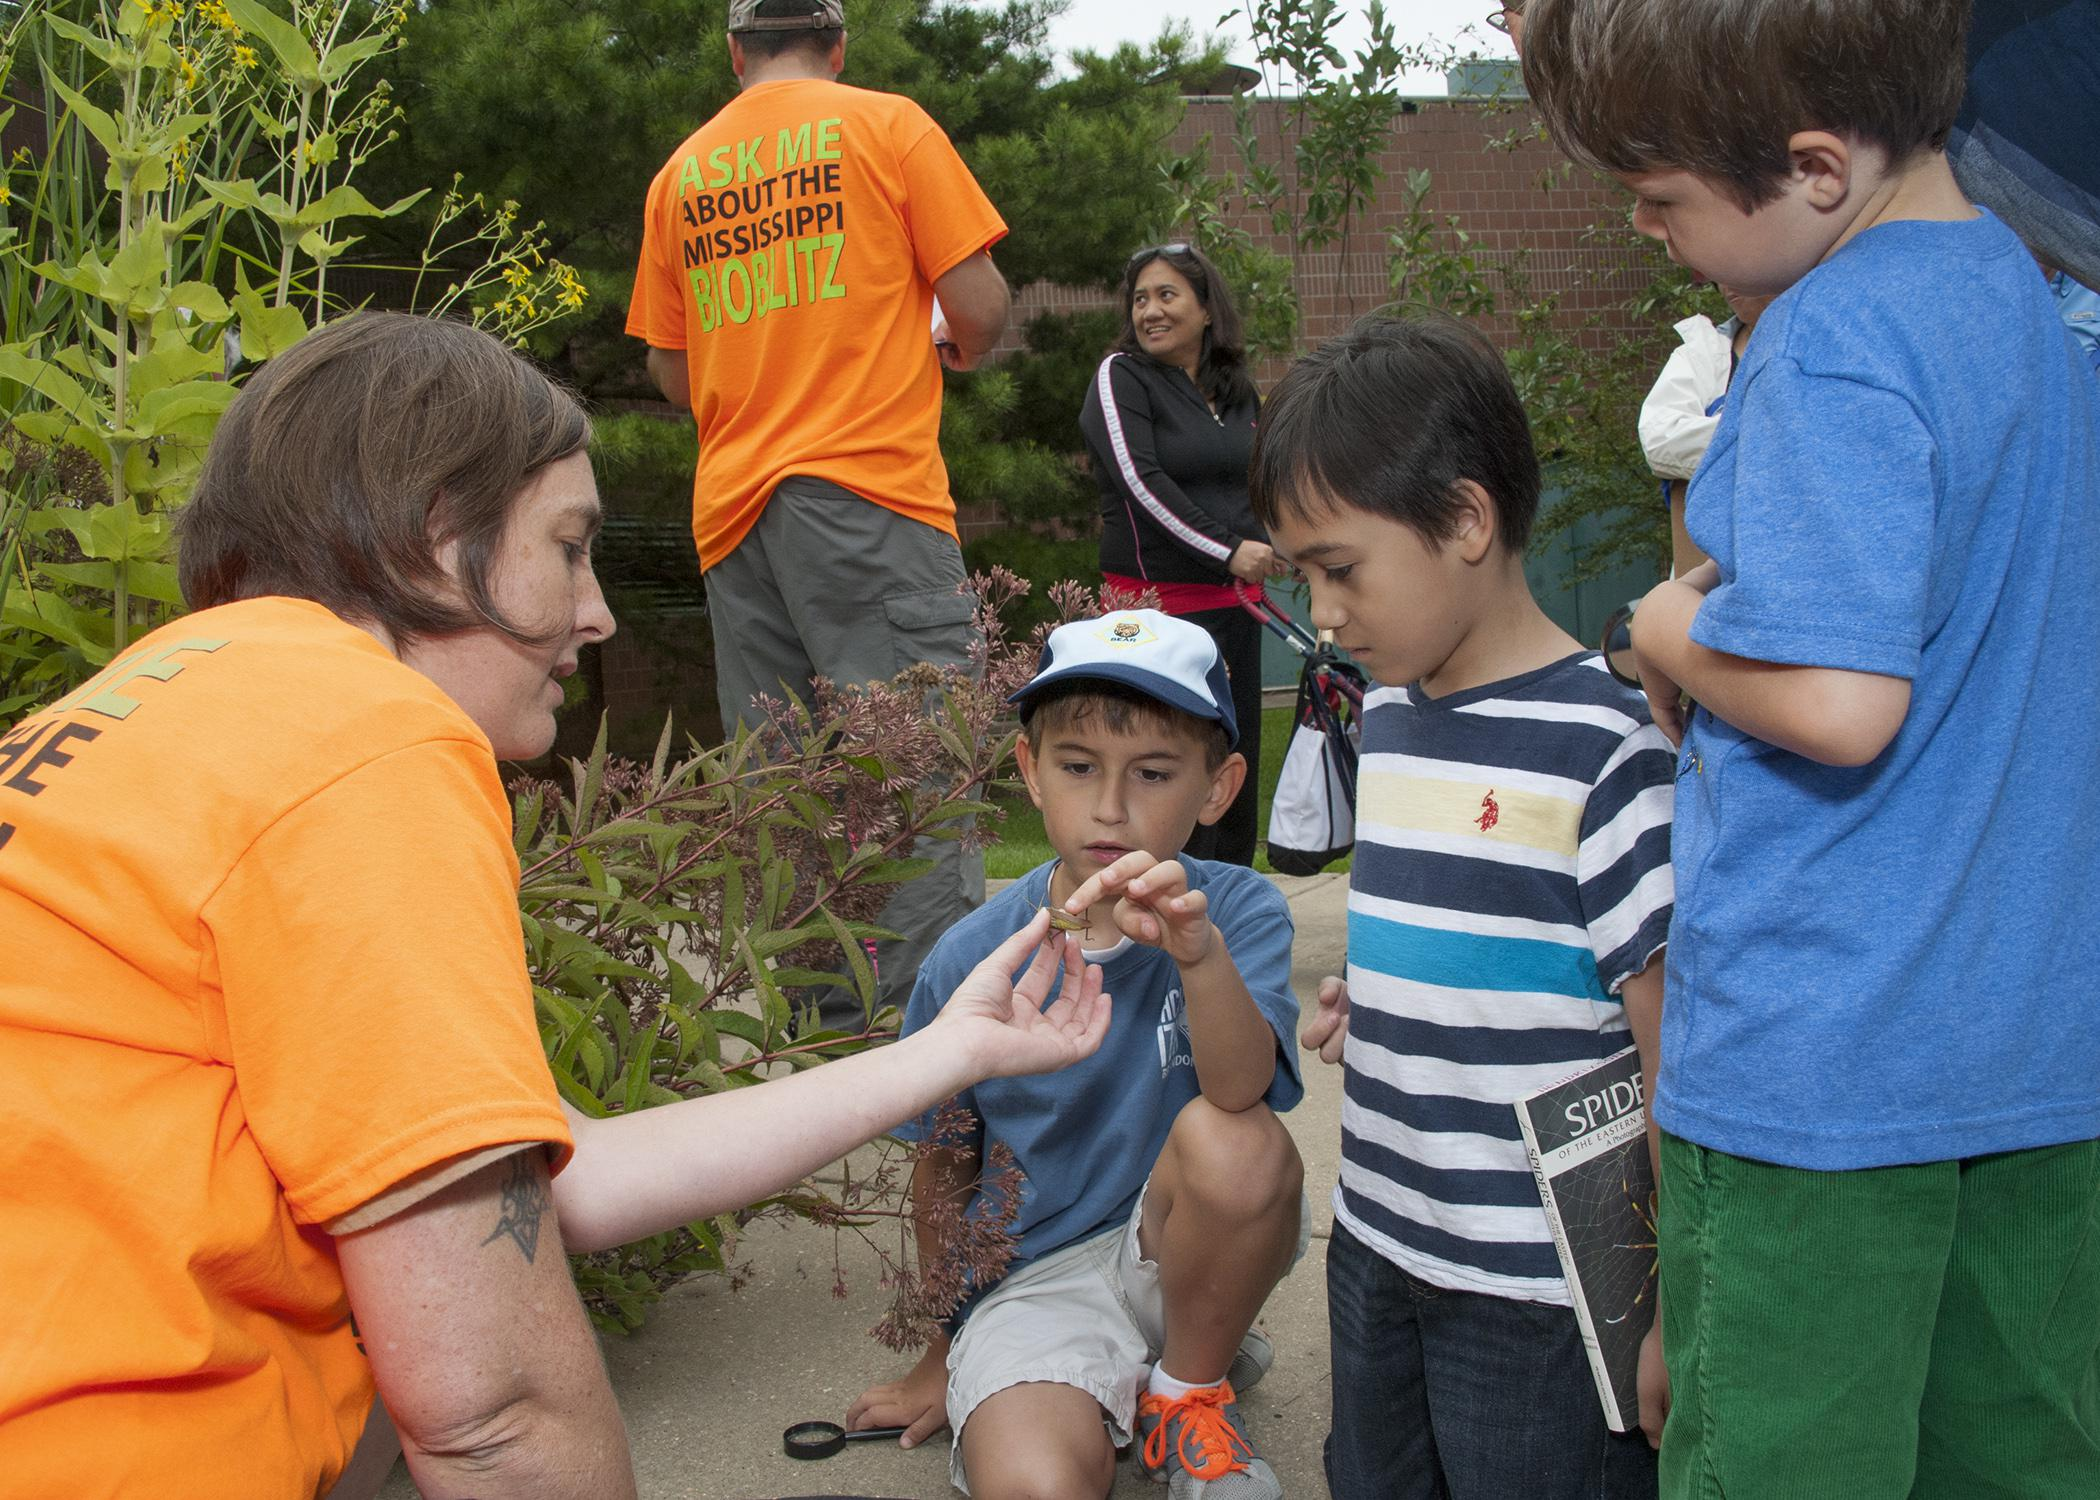 Jennifer Seltzer, a research associate with the Mississippi Entomological Museum at Mississippi State University, talks to Jameson Clancy, sitting, Thomas Taylor and Simon Smith about a grasshopper they found during the BioBlitz Sept. 13, 2014, at the Mississippi Museum of Natural Science. The 13-hour event helped educate the public about local ecosystems. (Photo by MSU Ag Communications/Kat Lawrence)